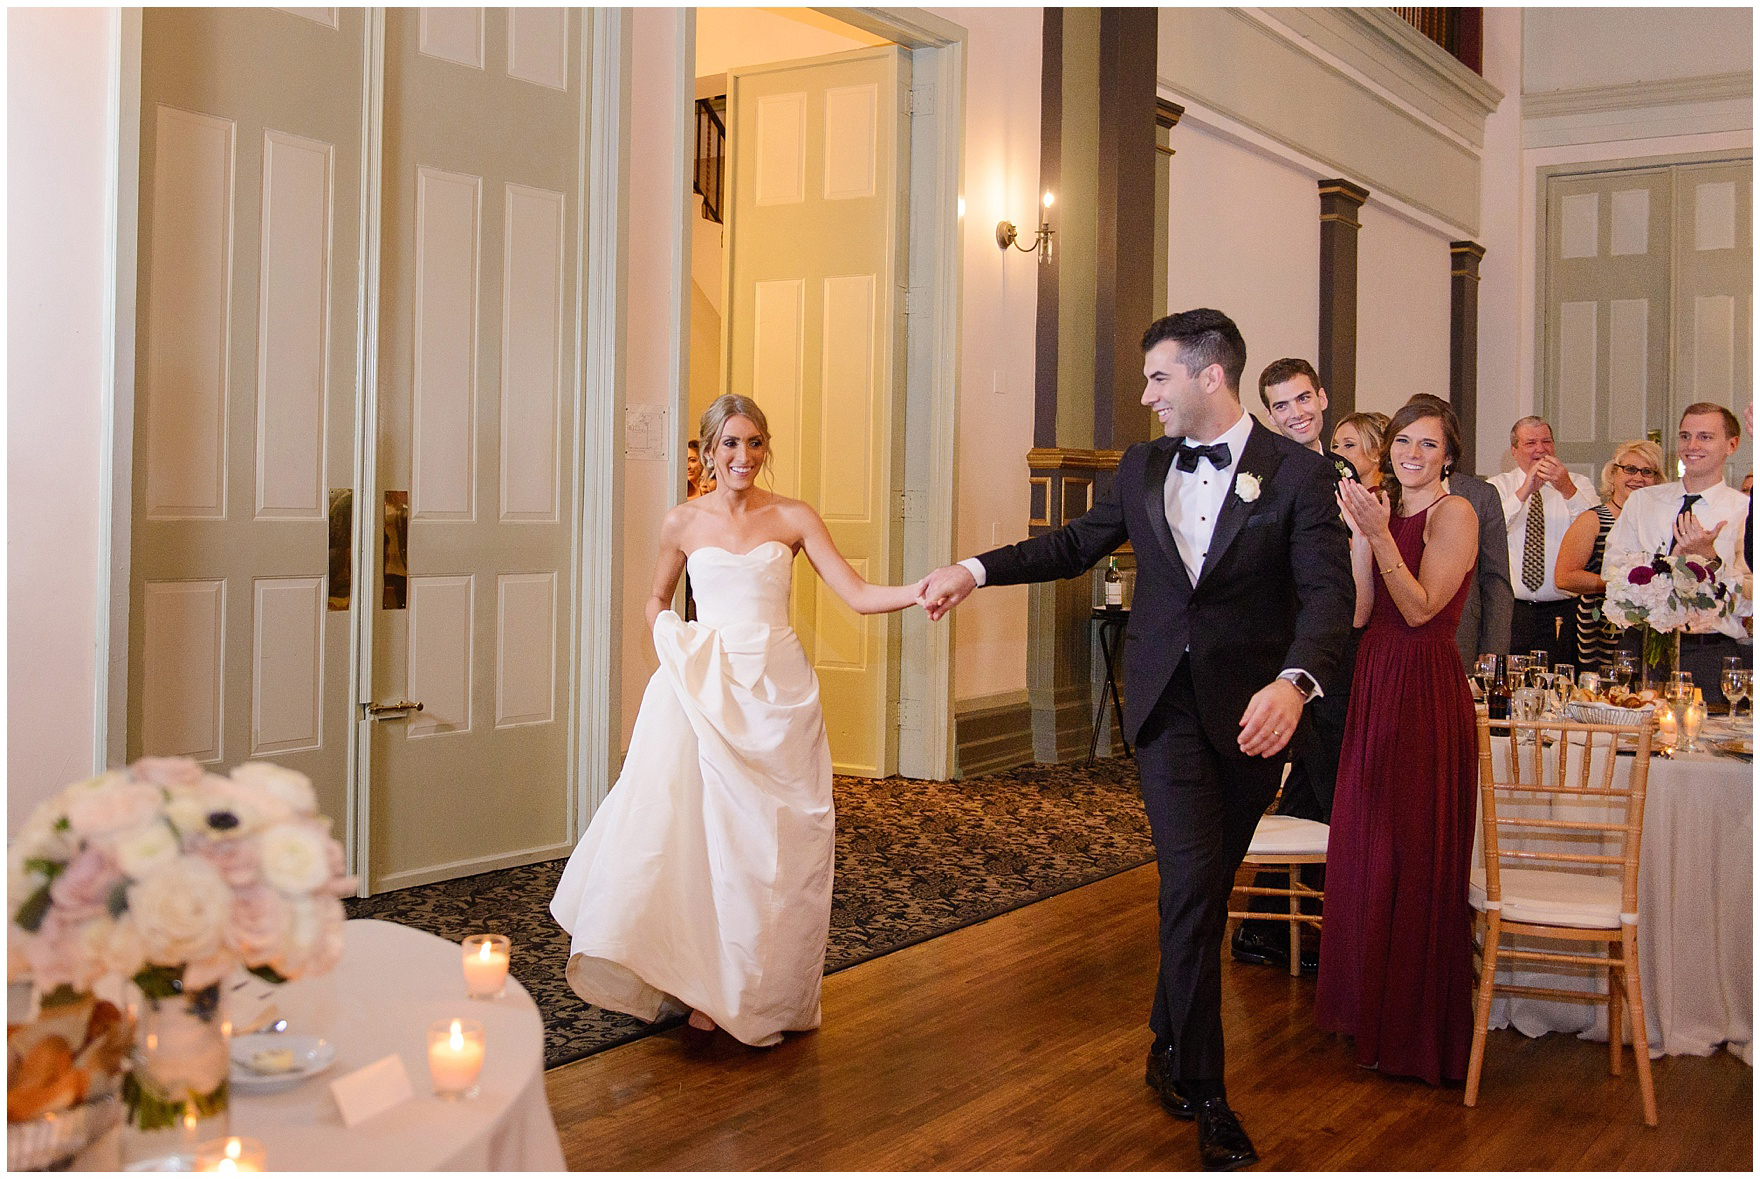 The bride and groom enter the reception to applause during a St. Clement Germania Place Chicago wedding.